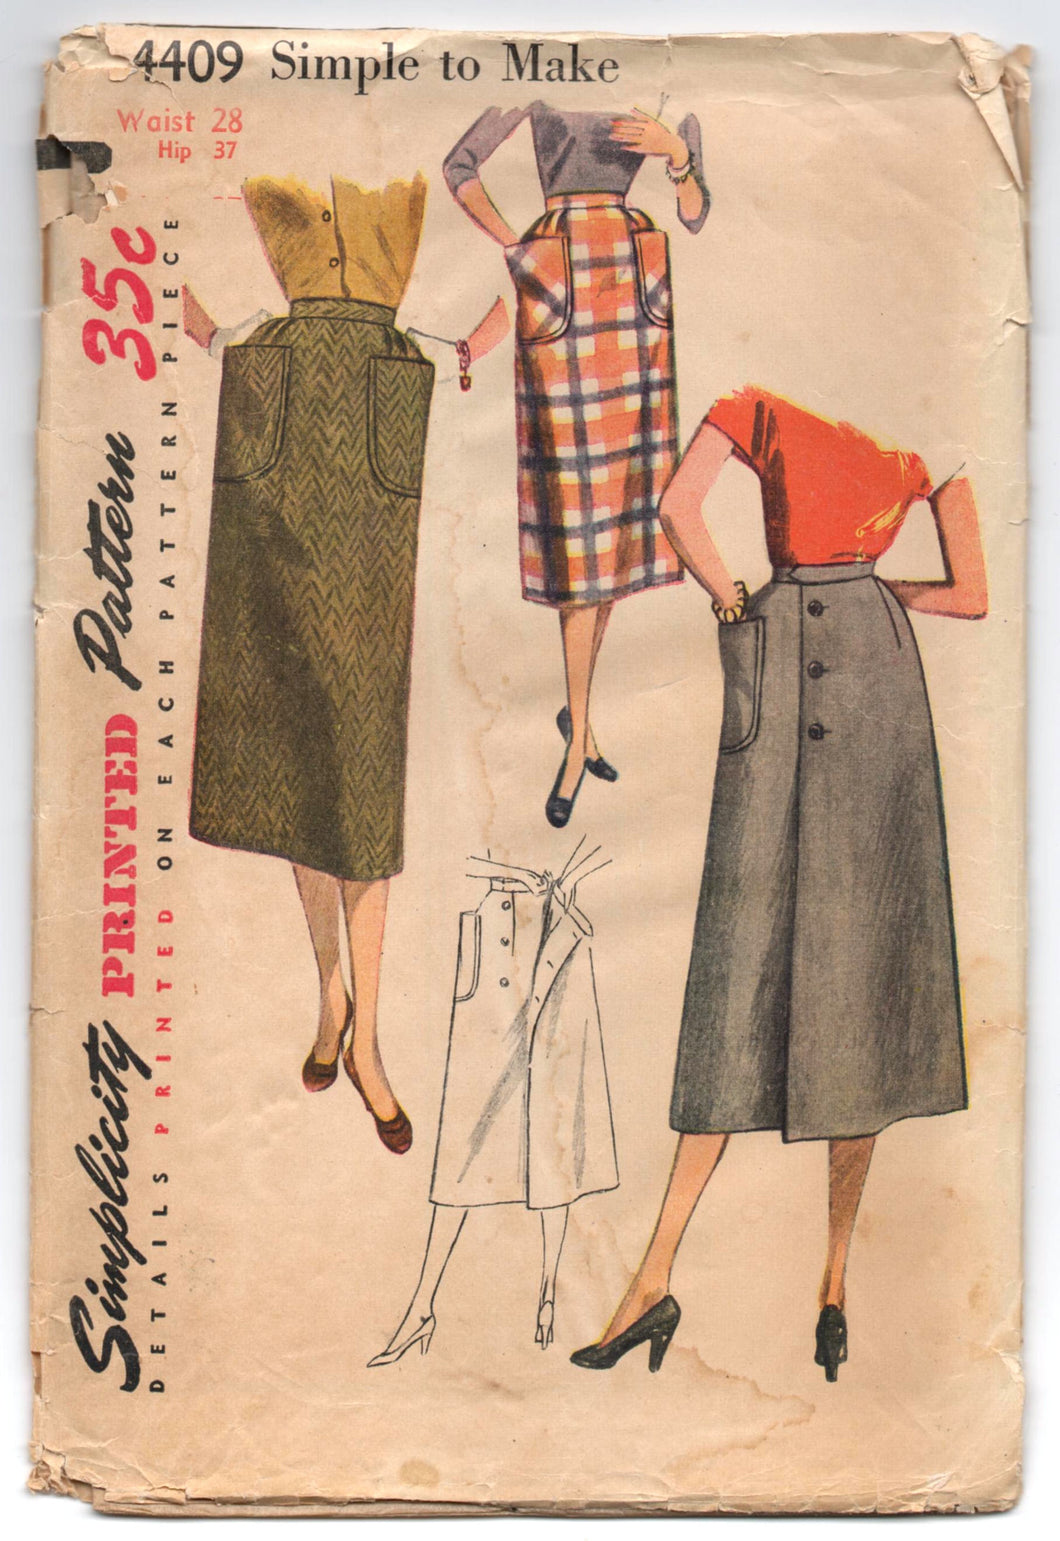 1950's Simplicity Slim Skirt or A-Line Wrap Skirt with Pockets Pattern - Waist 28